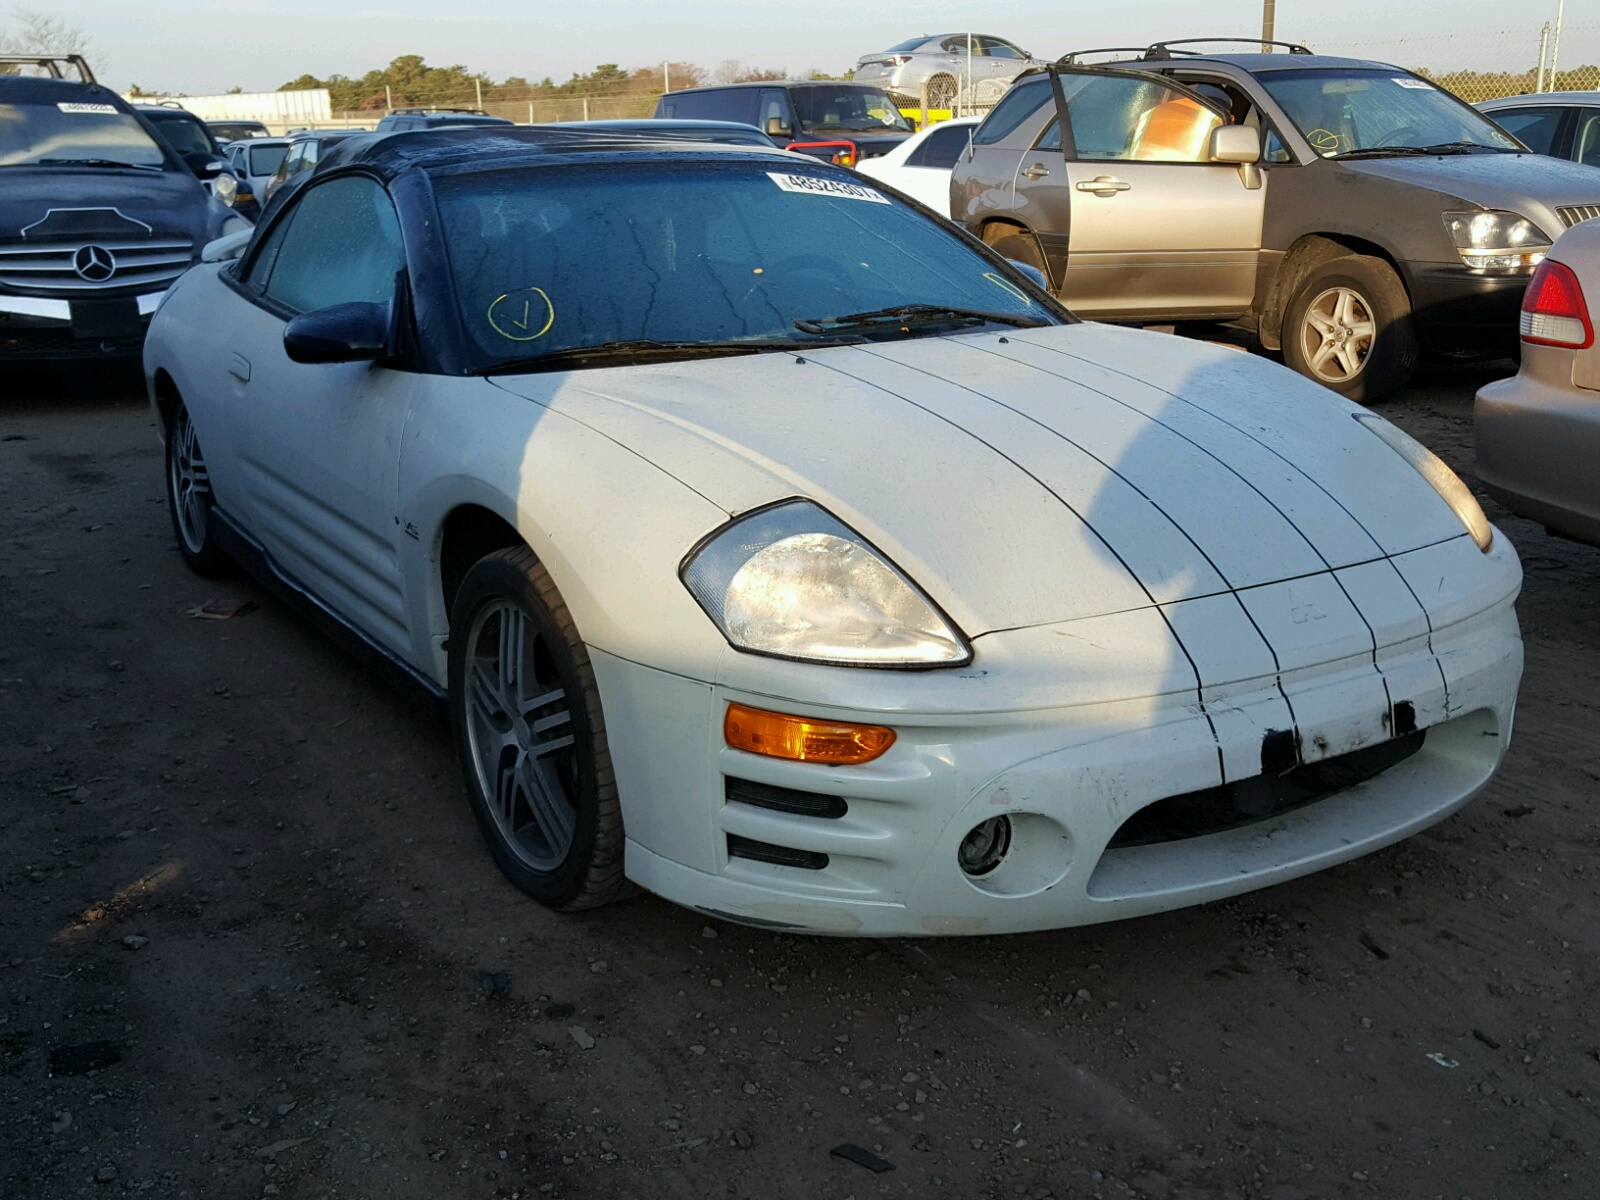 new october s for full sale auction size eclipse gt item window in sold mitsubishi